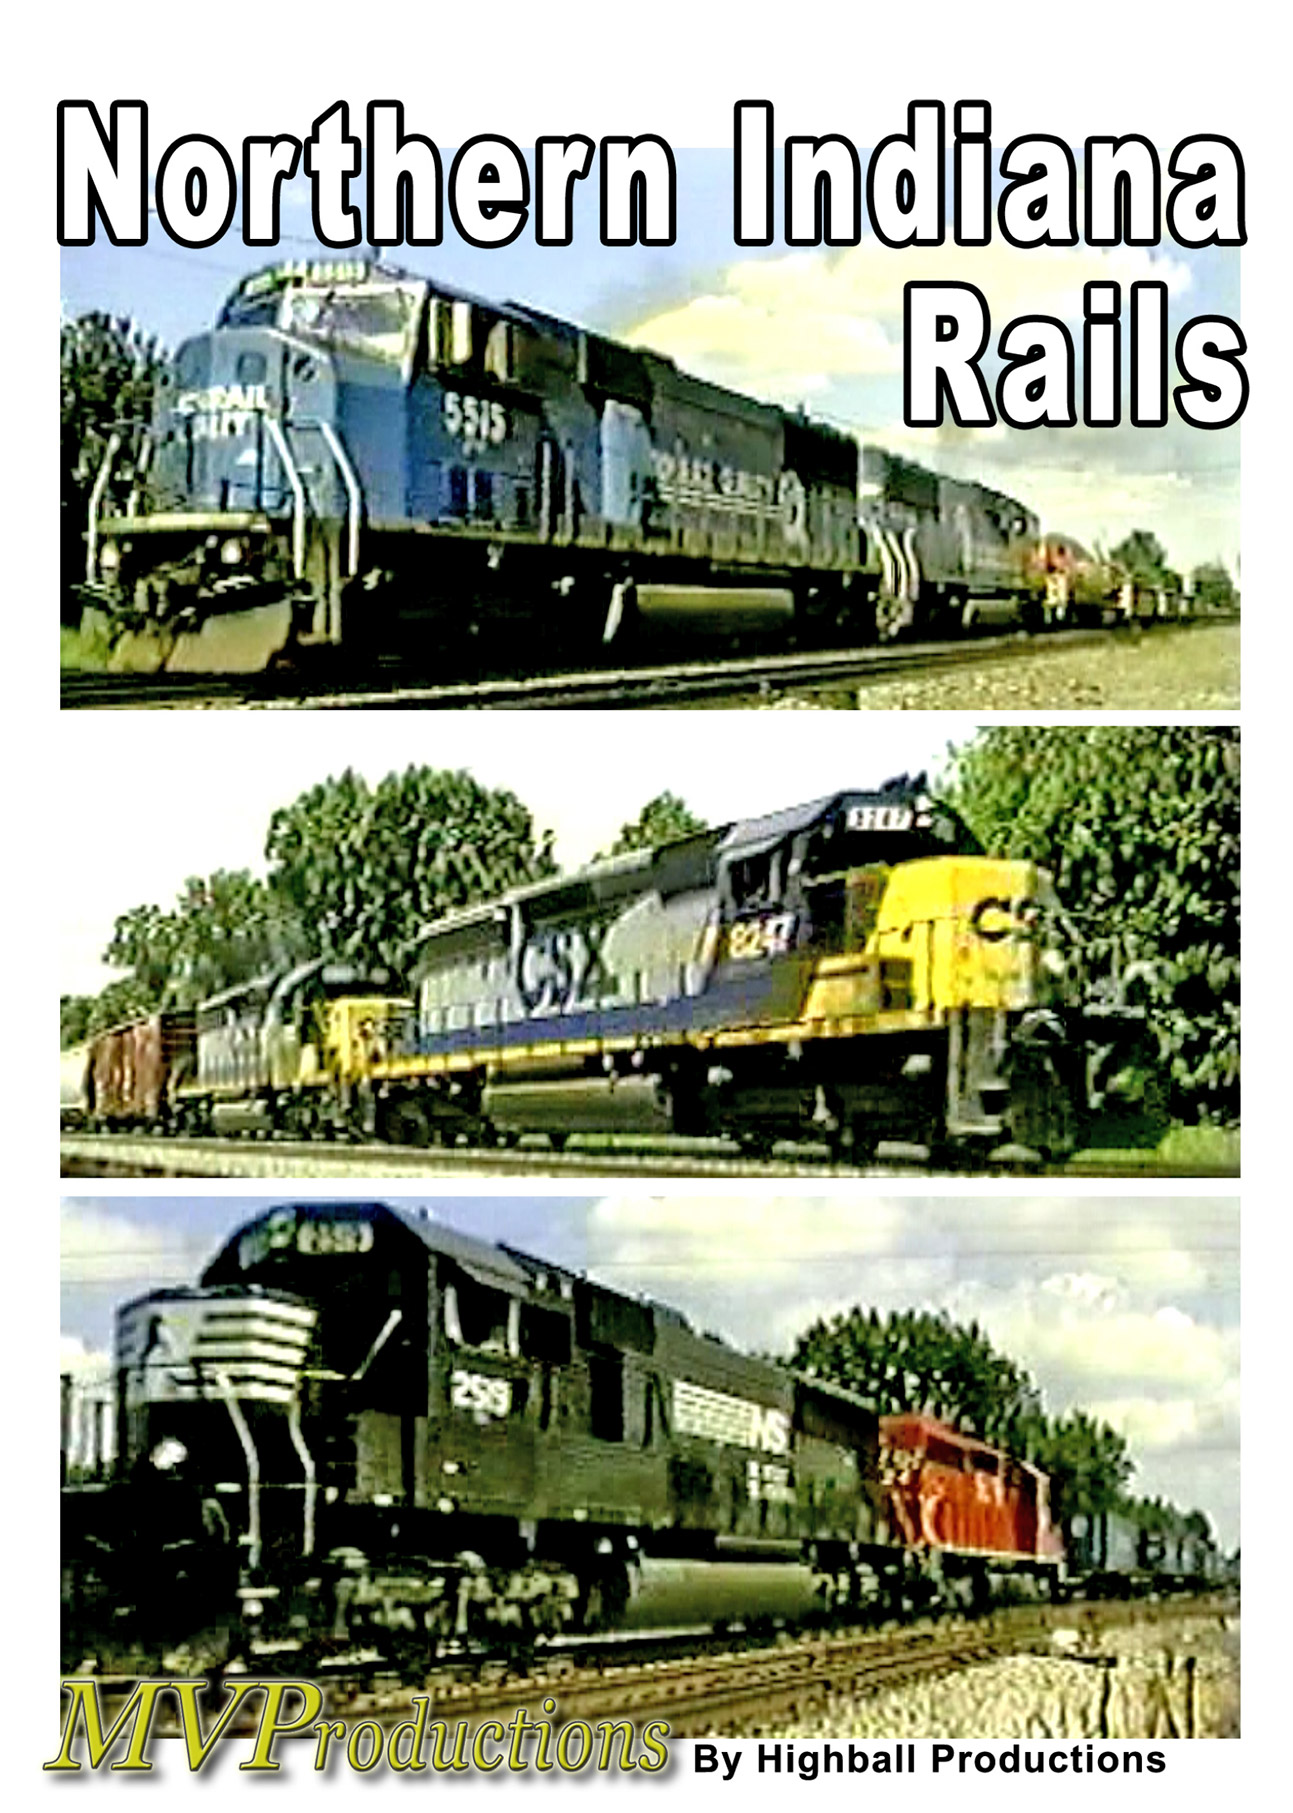 Northern Indiana Rails Midwest Video Productions MVNIR 601577880264